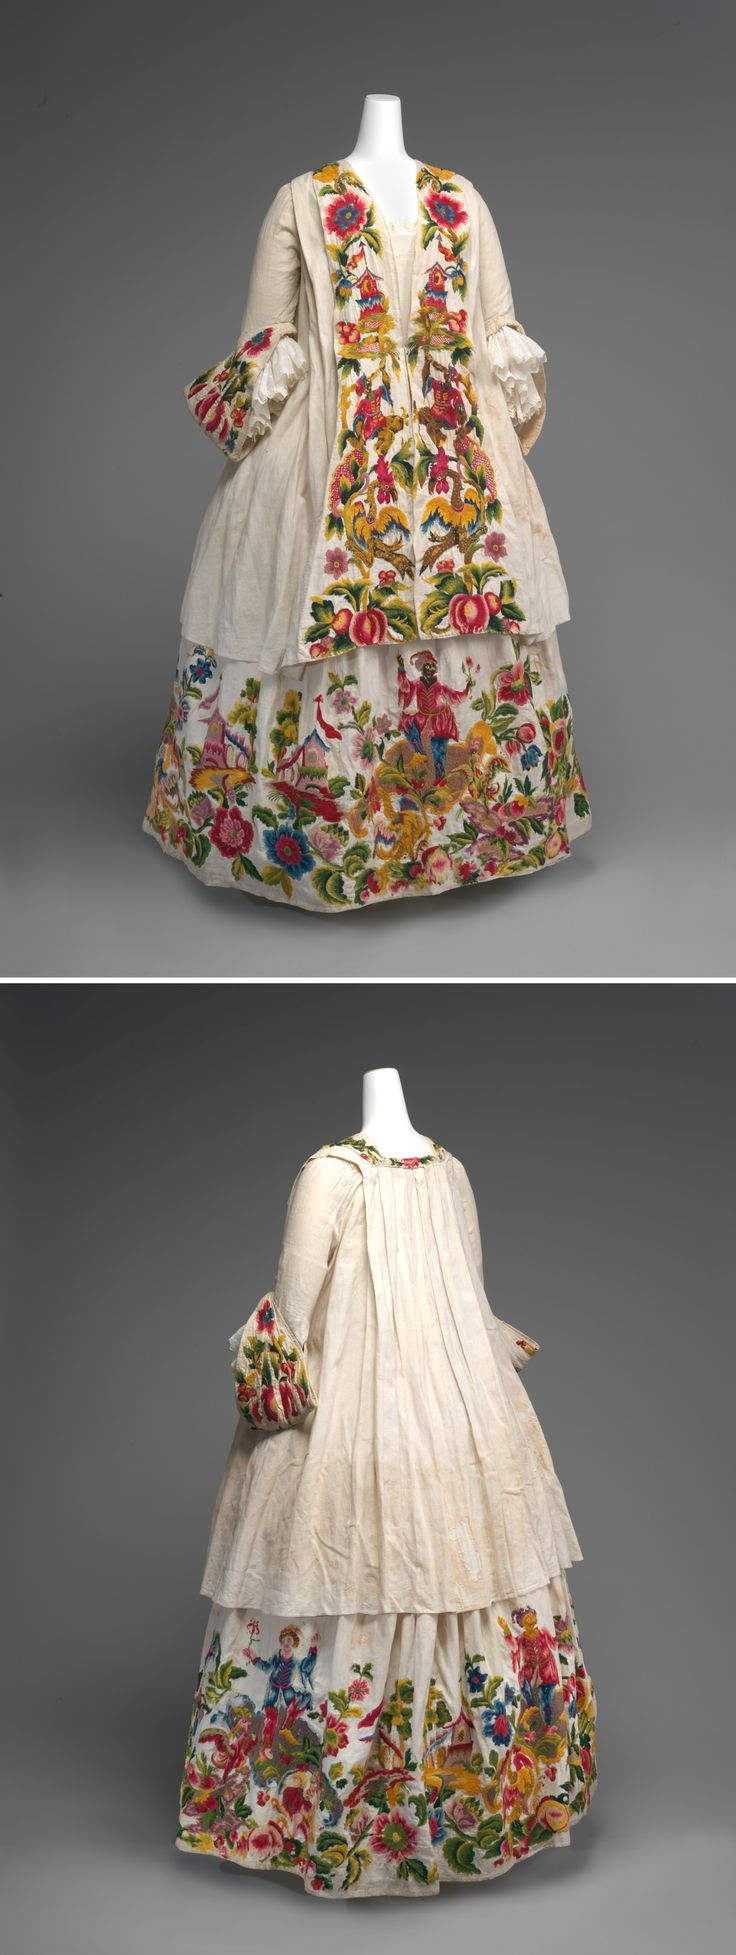 Pet-en-l'Air and Petticoat 1720-1740